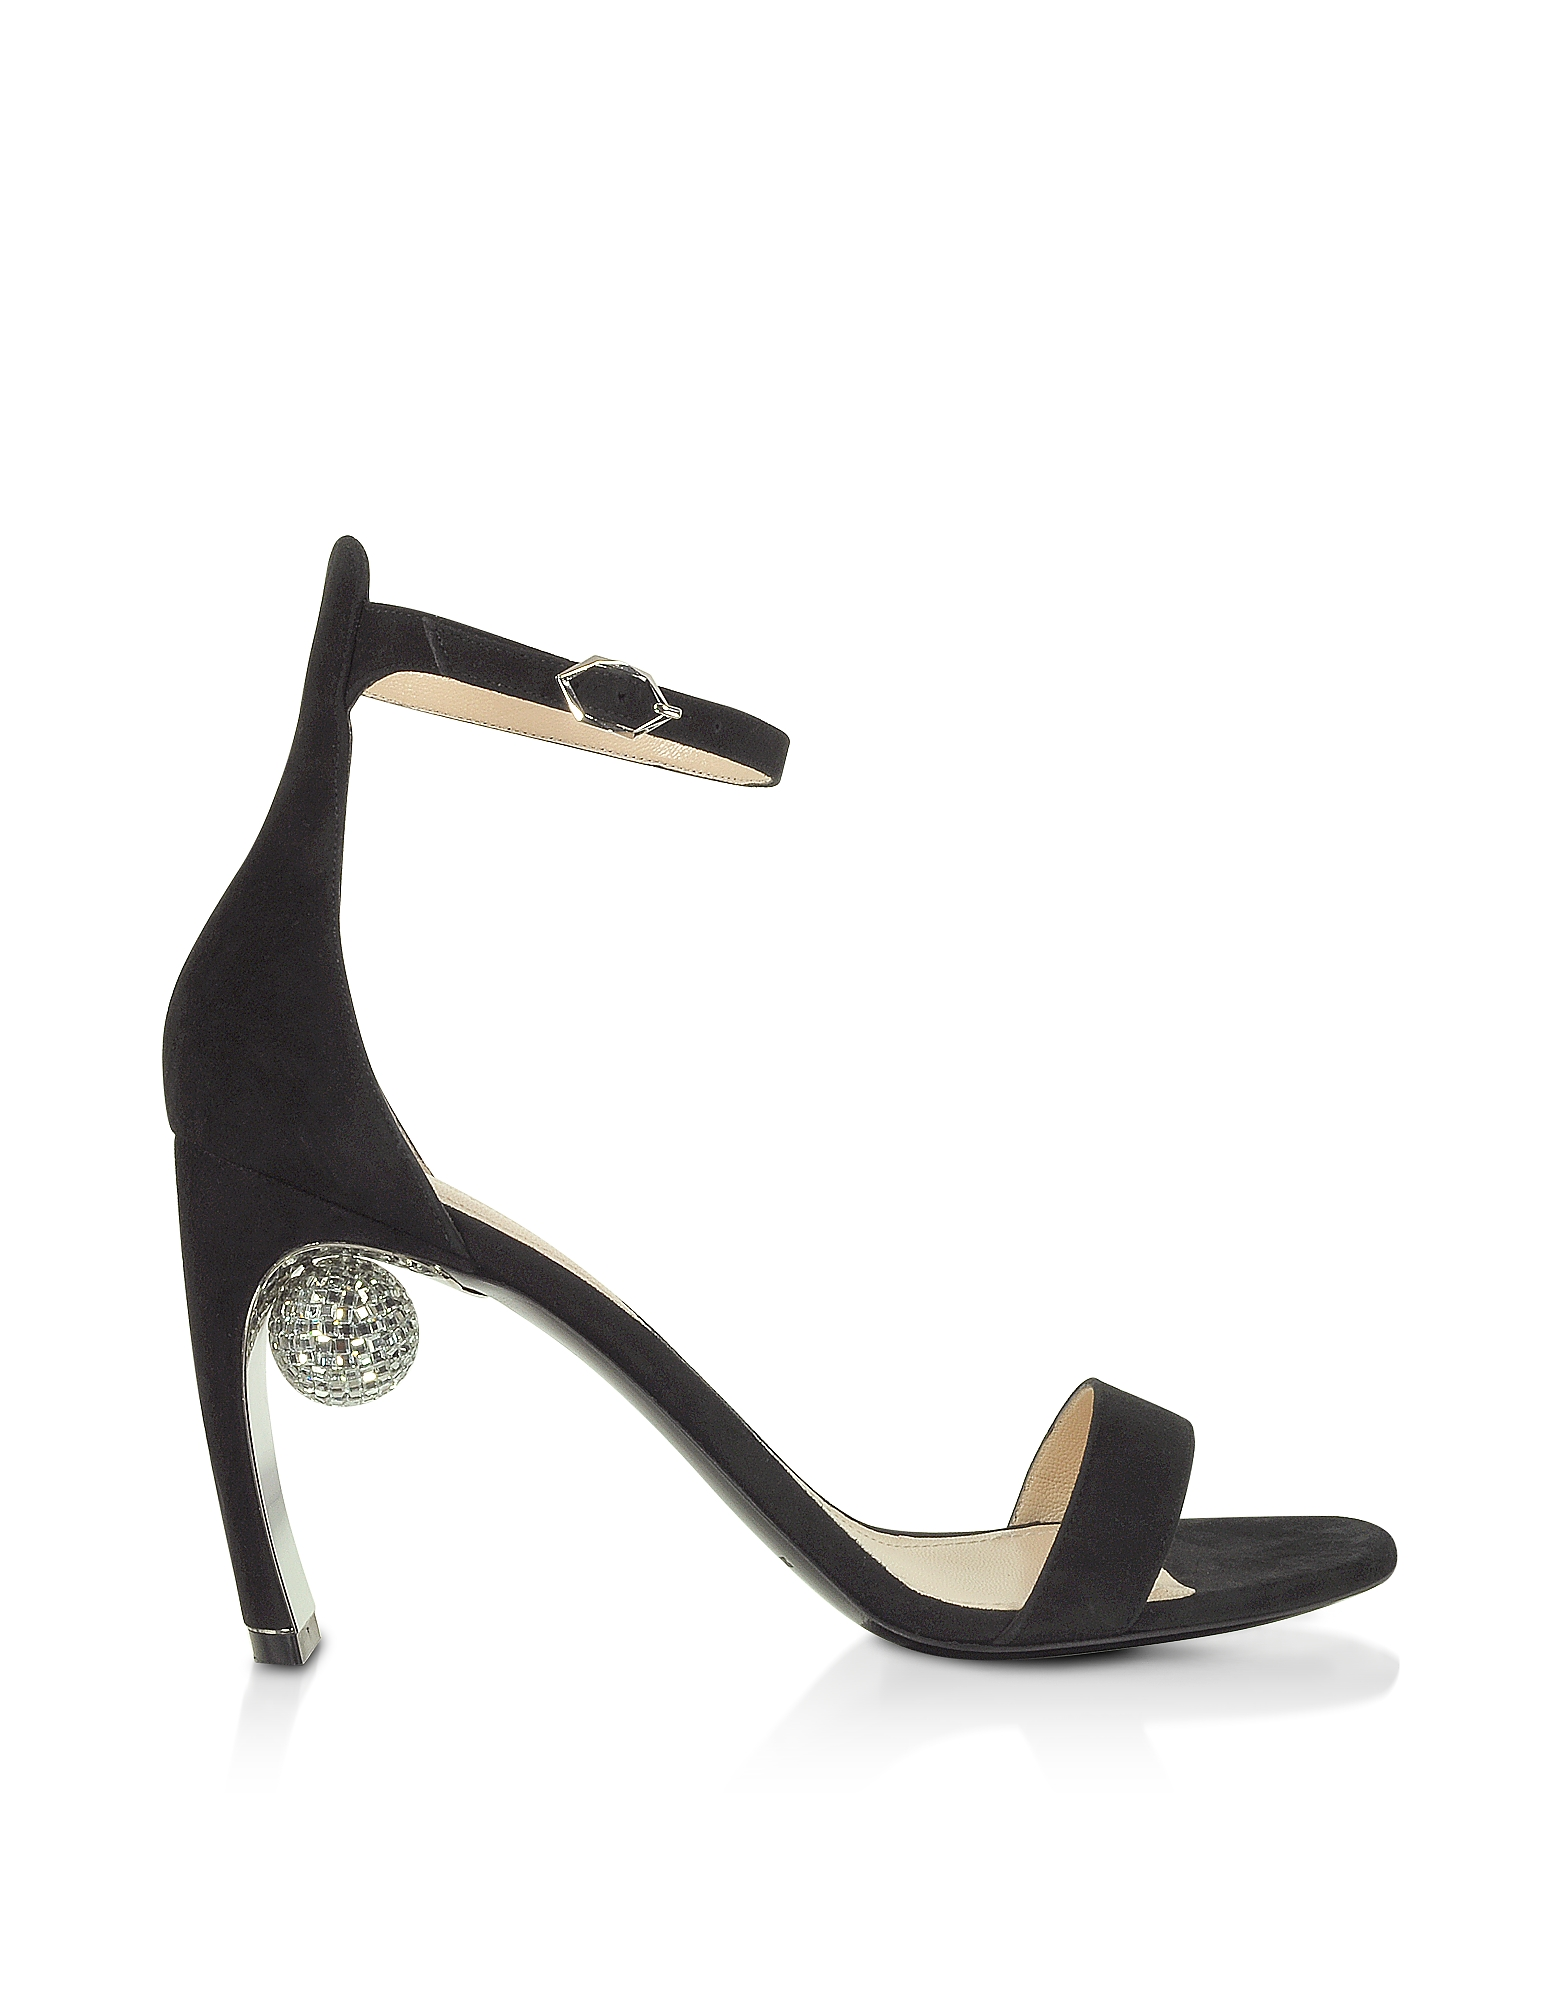 Nicholas Kirkwood Designer Shoes, Black 90mm Maeva Sandals